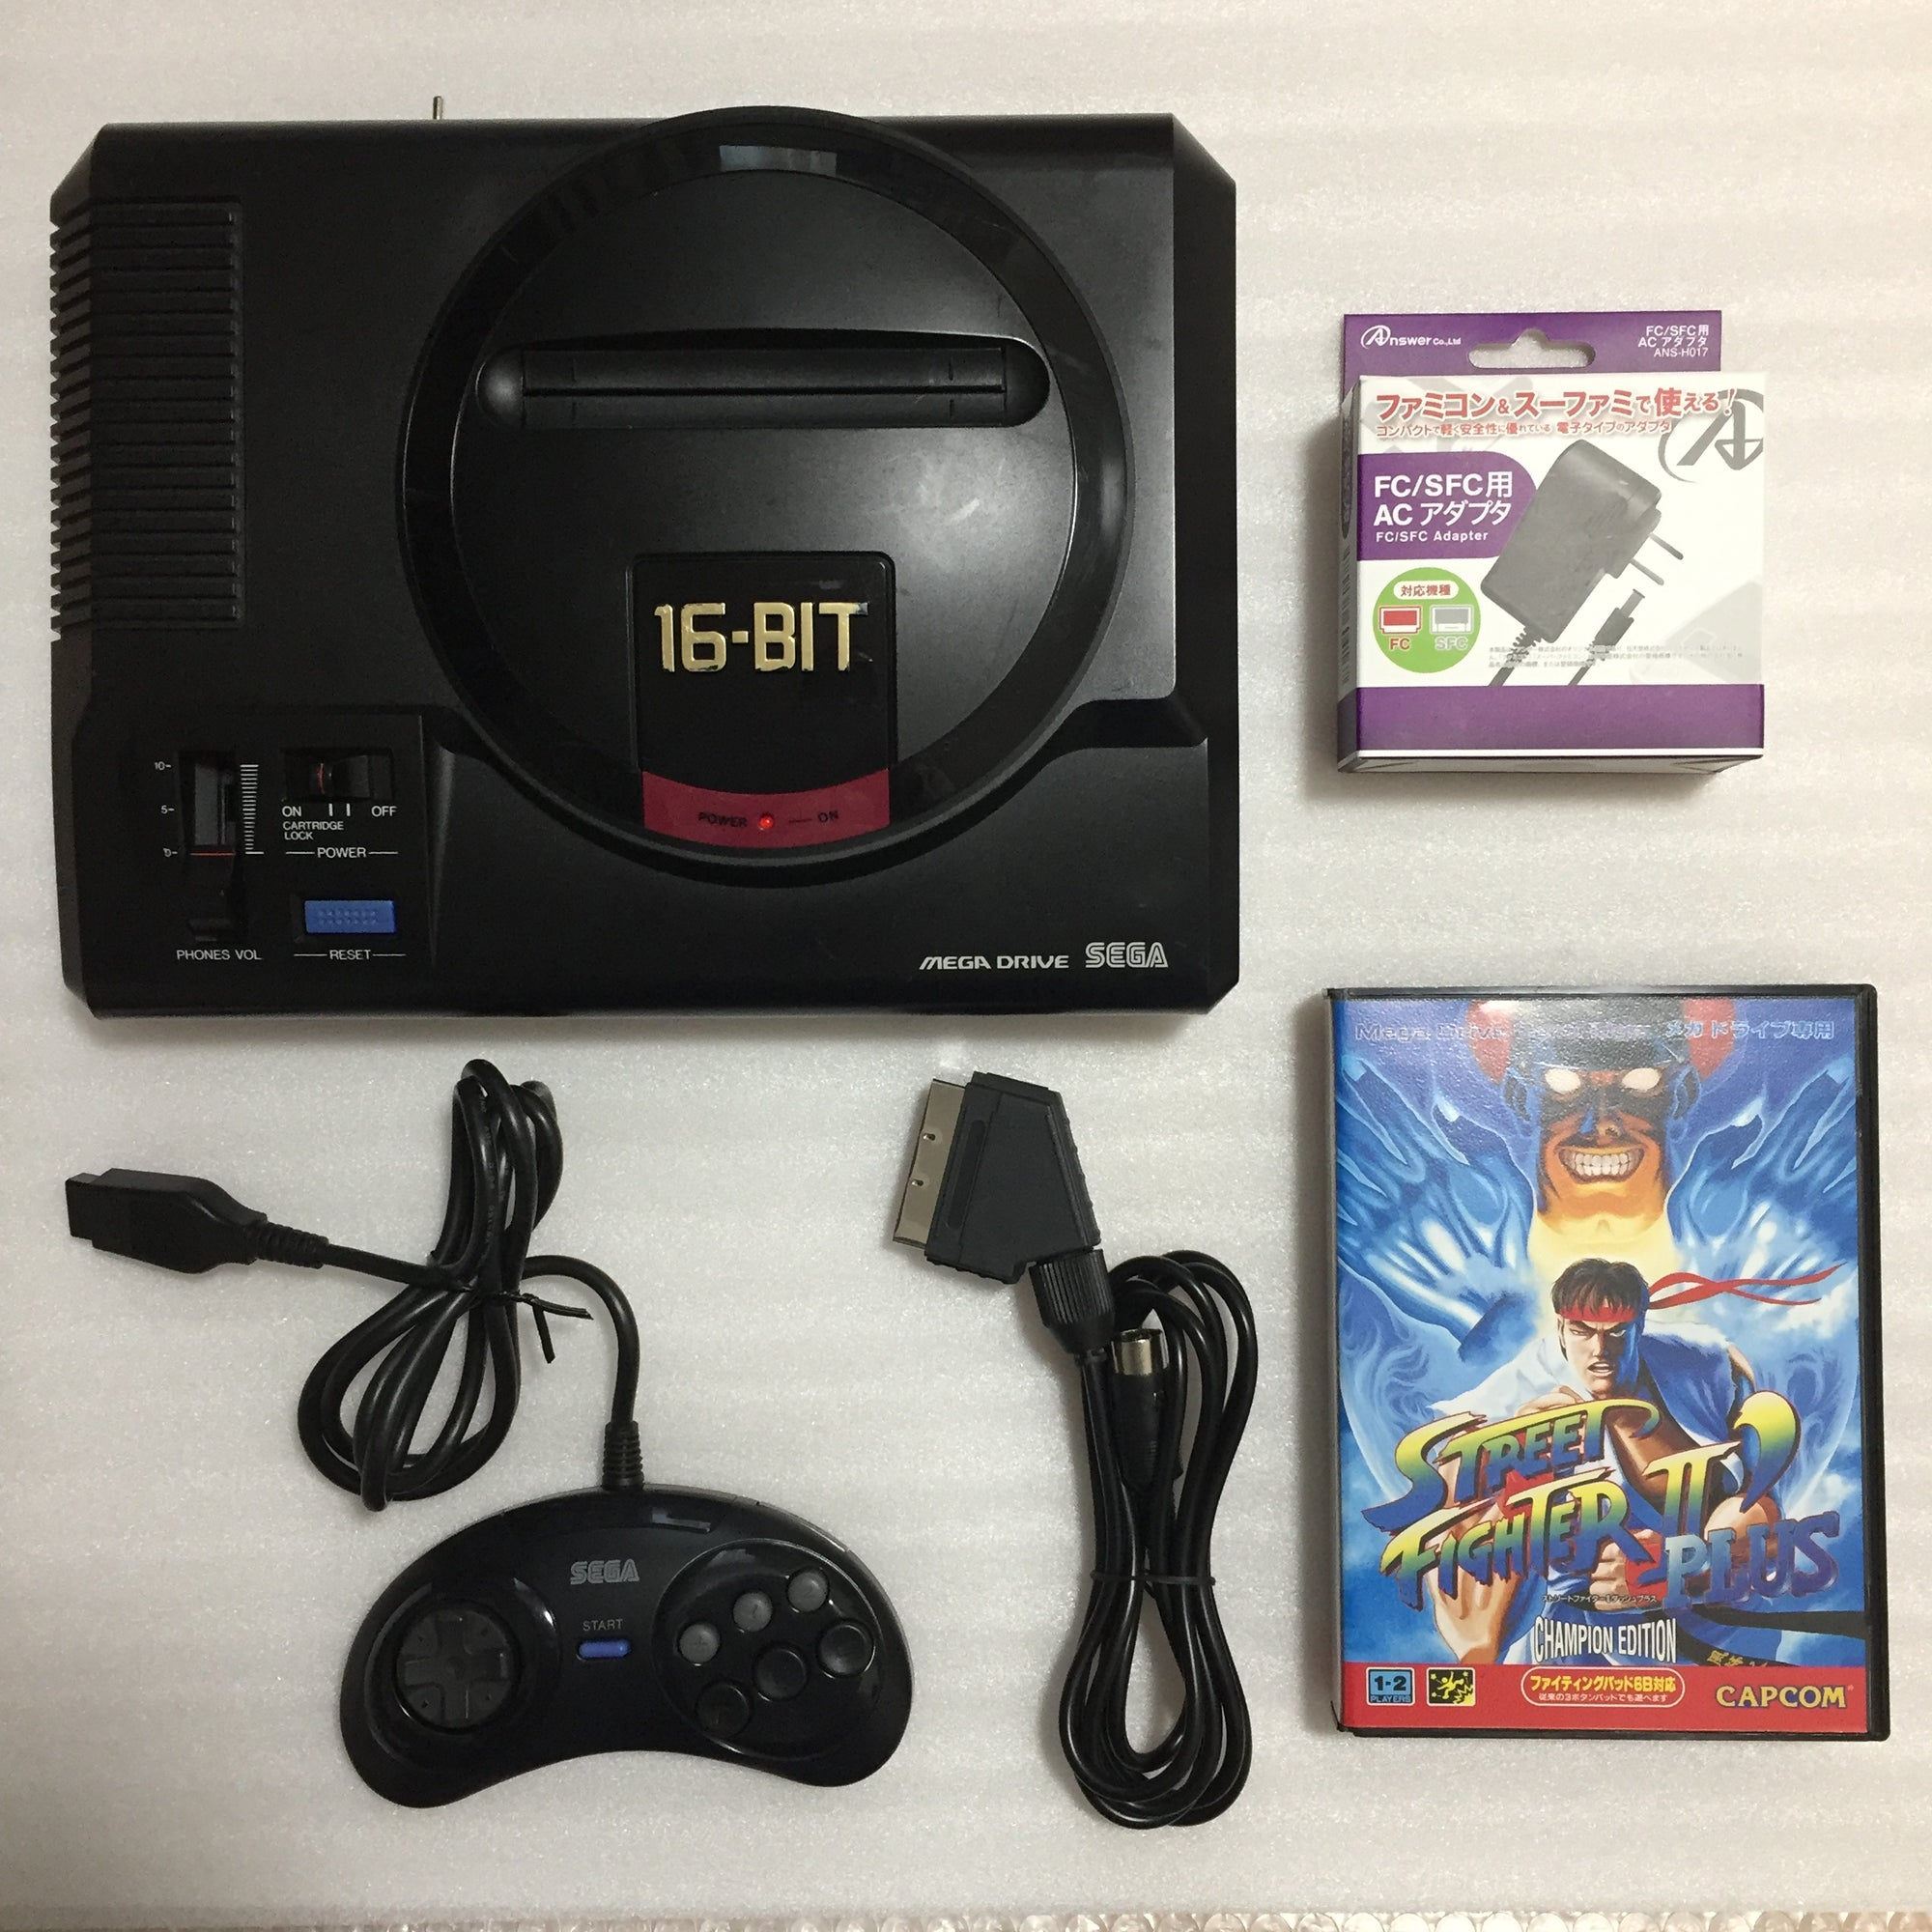 Megadrive - Region free with RGB cable - Street Fighter set